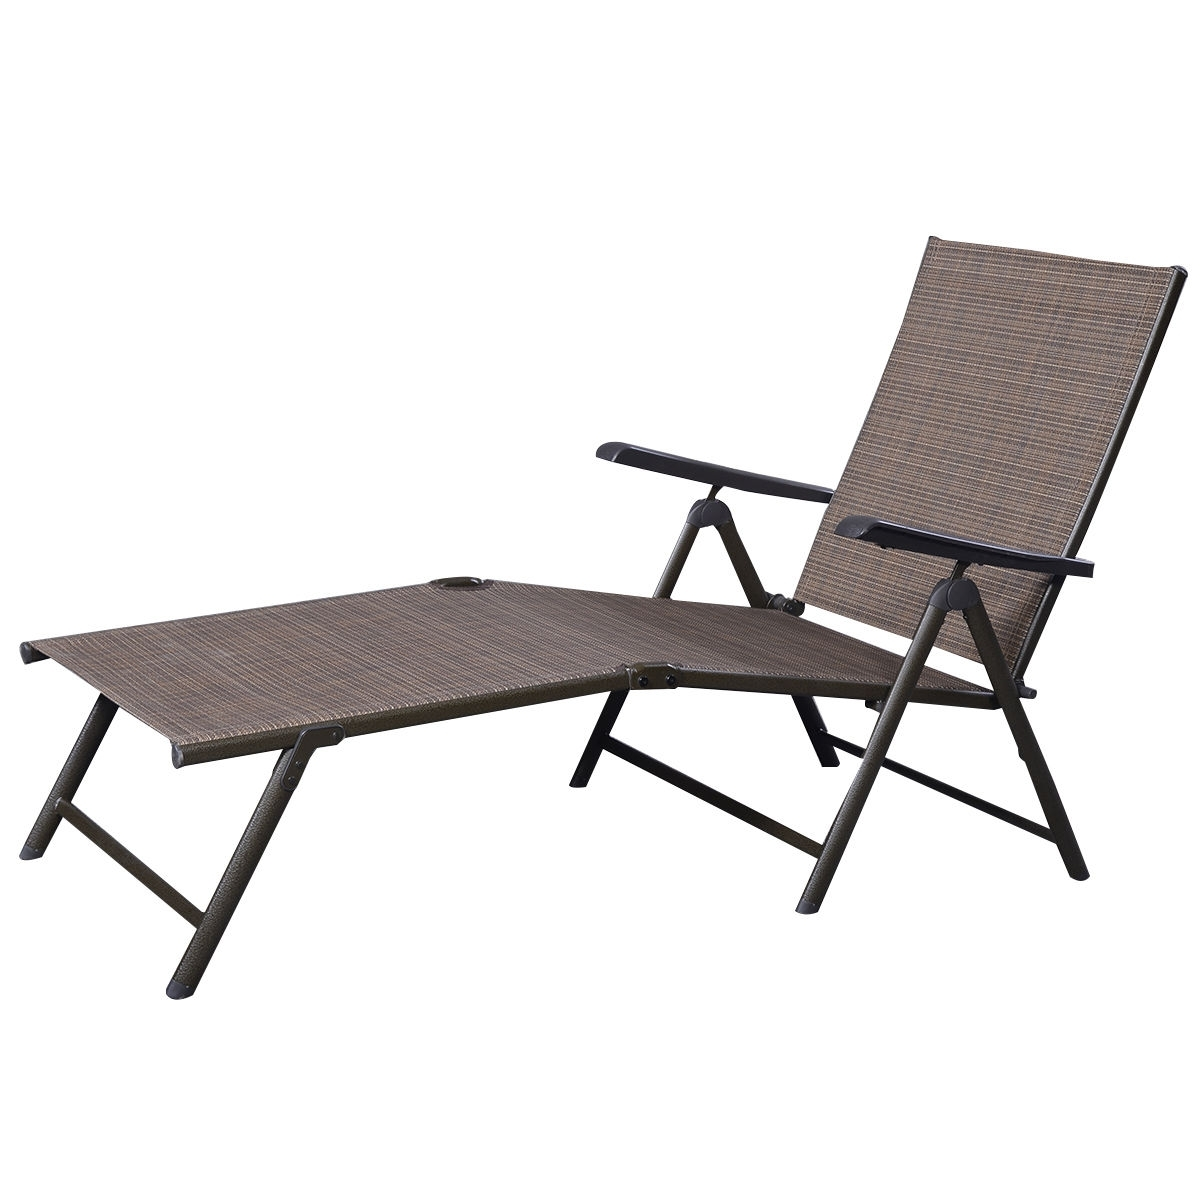 2017 Outdoor Adjustable Chaise Lounge Chair – Sunloungers – Outdoor For Adjustable Chaise Lounges (View 12 of 15)